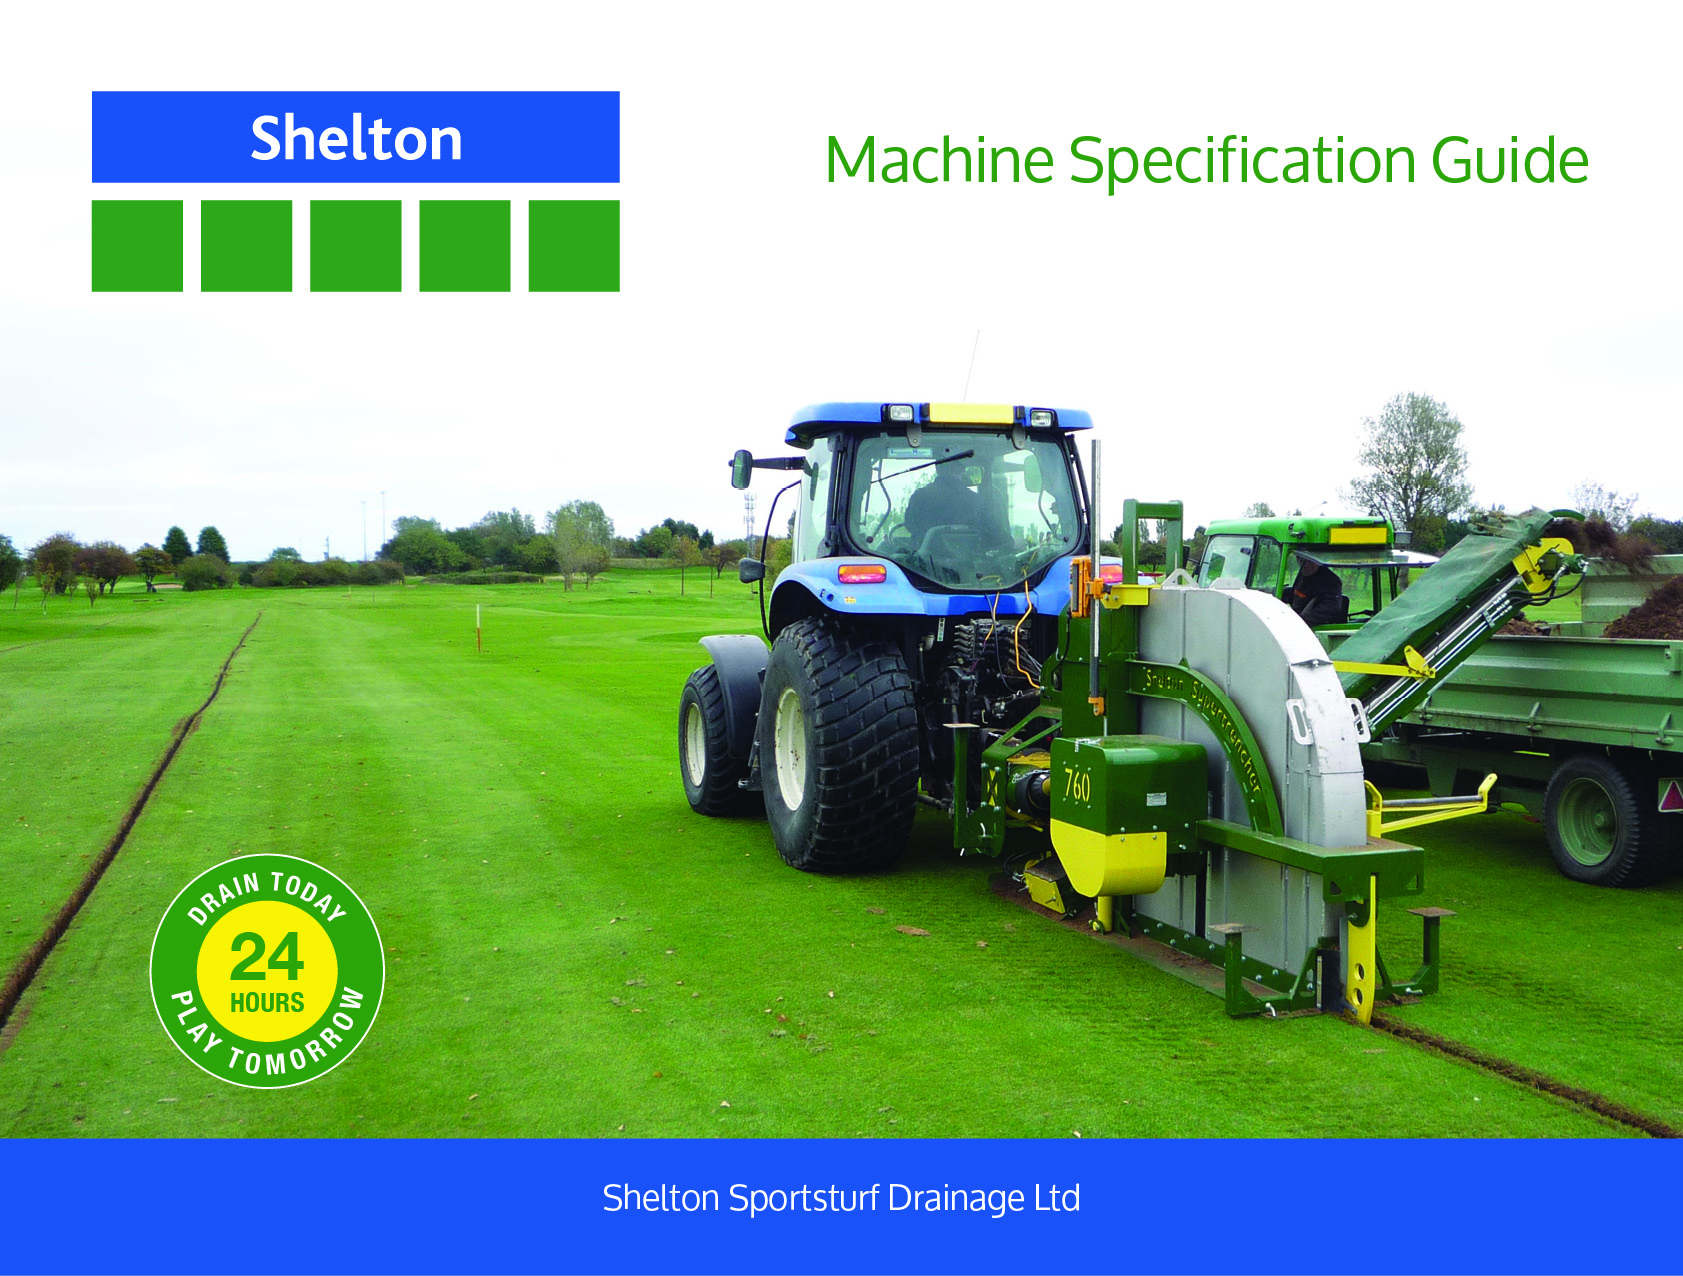 Thumbnail for Shelton Sportsturf Machine Specification Guide